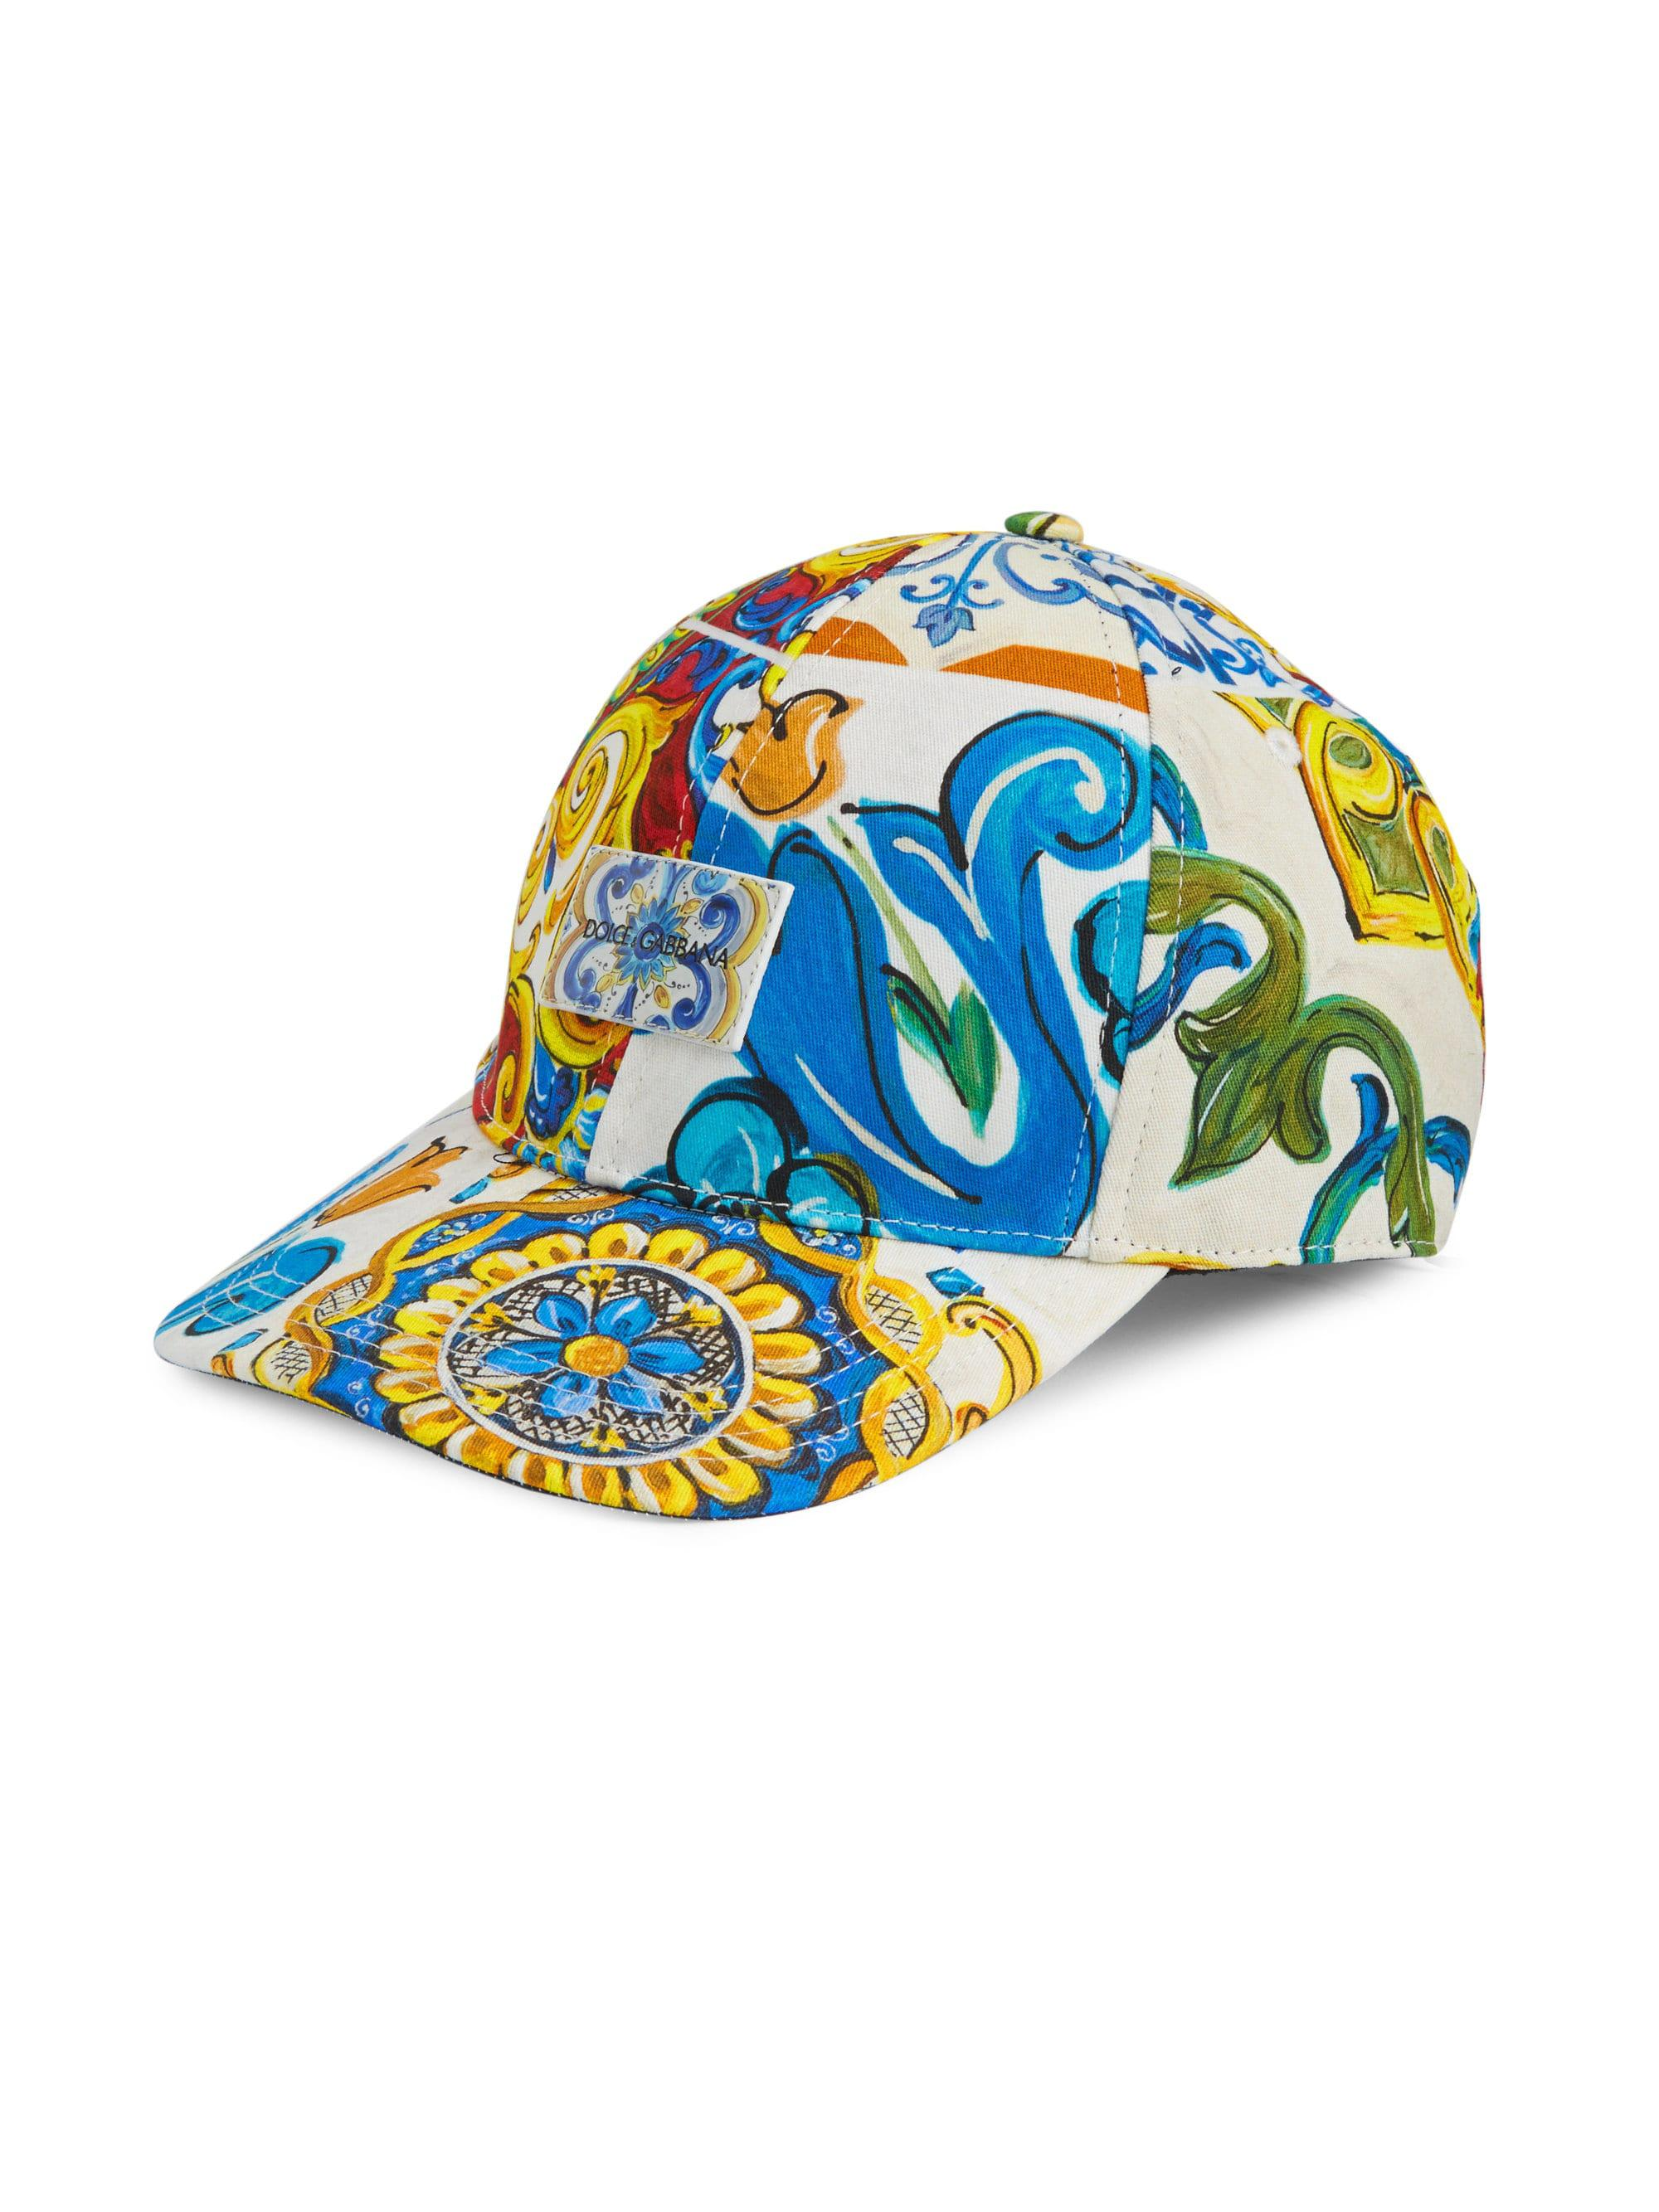 4e7b5e30876 Lyst - Dolce   Gabbana Maiolica Printed Baseball Cap in Blue for Men